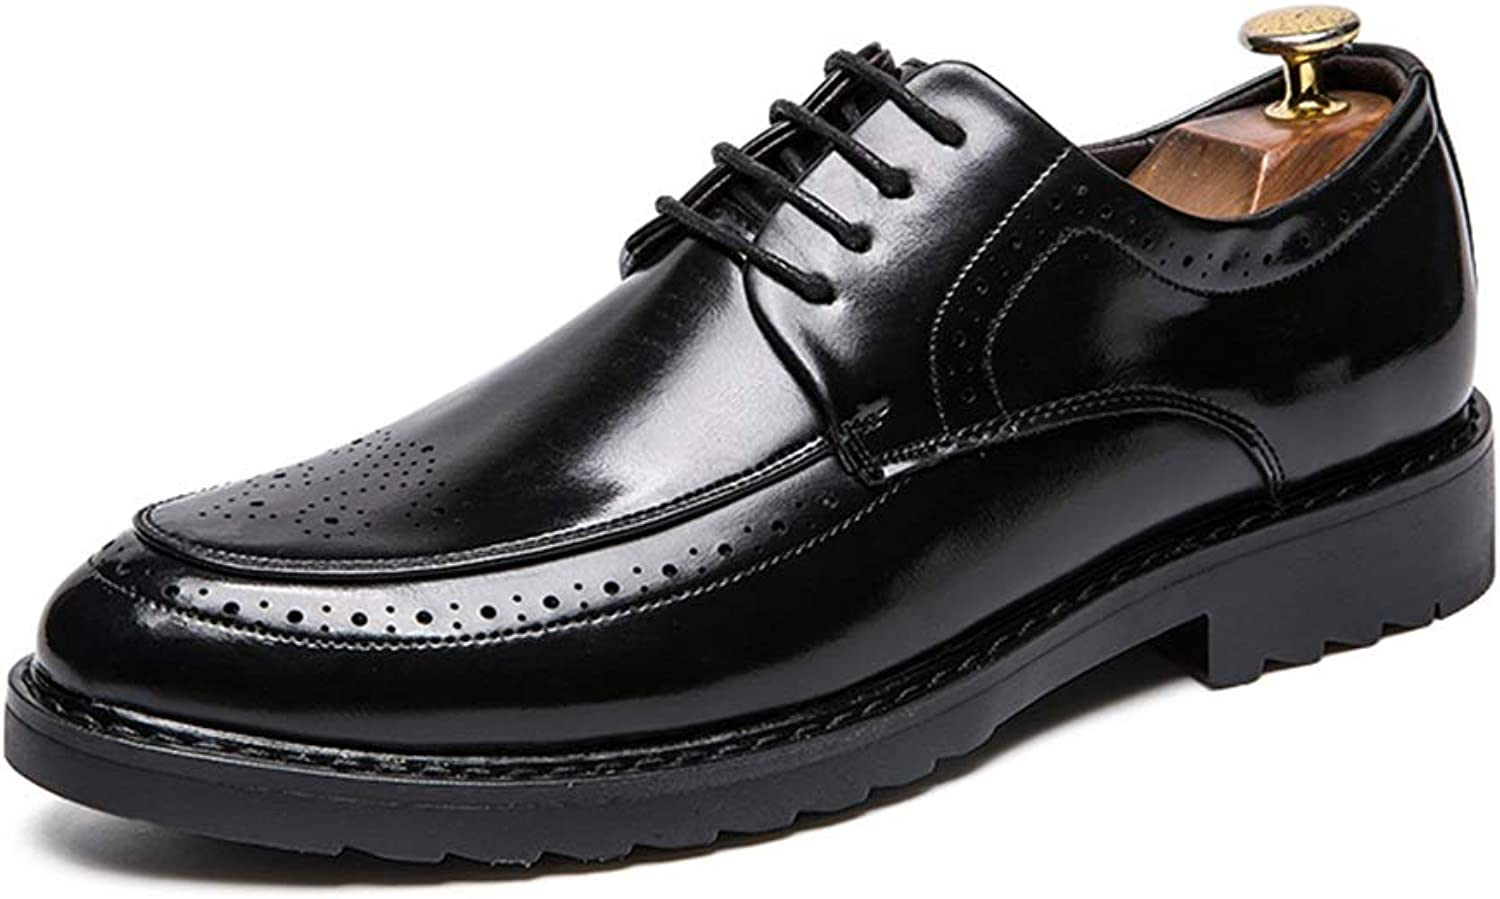 JIALUN-shoes Men's Fashion Business Oxford Casual Fashion Style Carving Low-top Patent Leather Leisure shoes